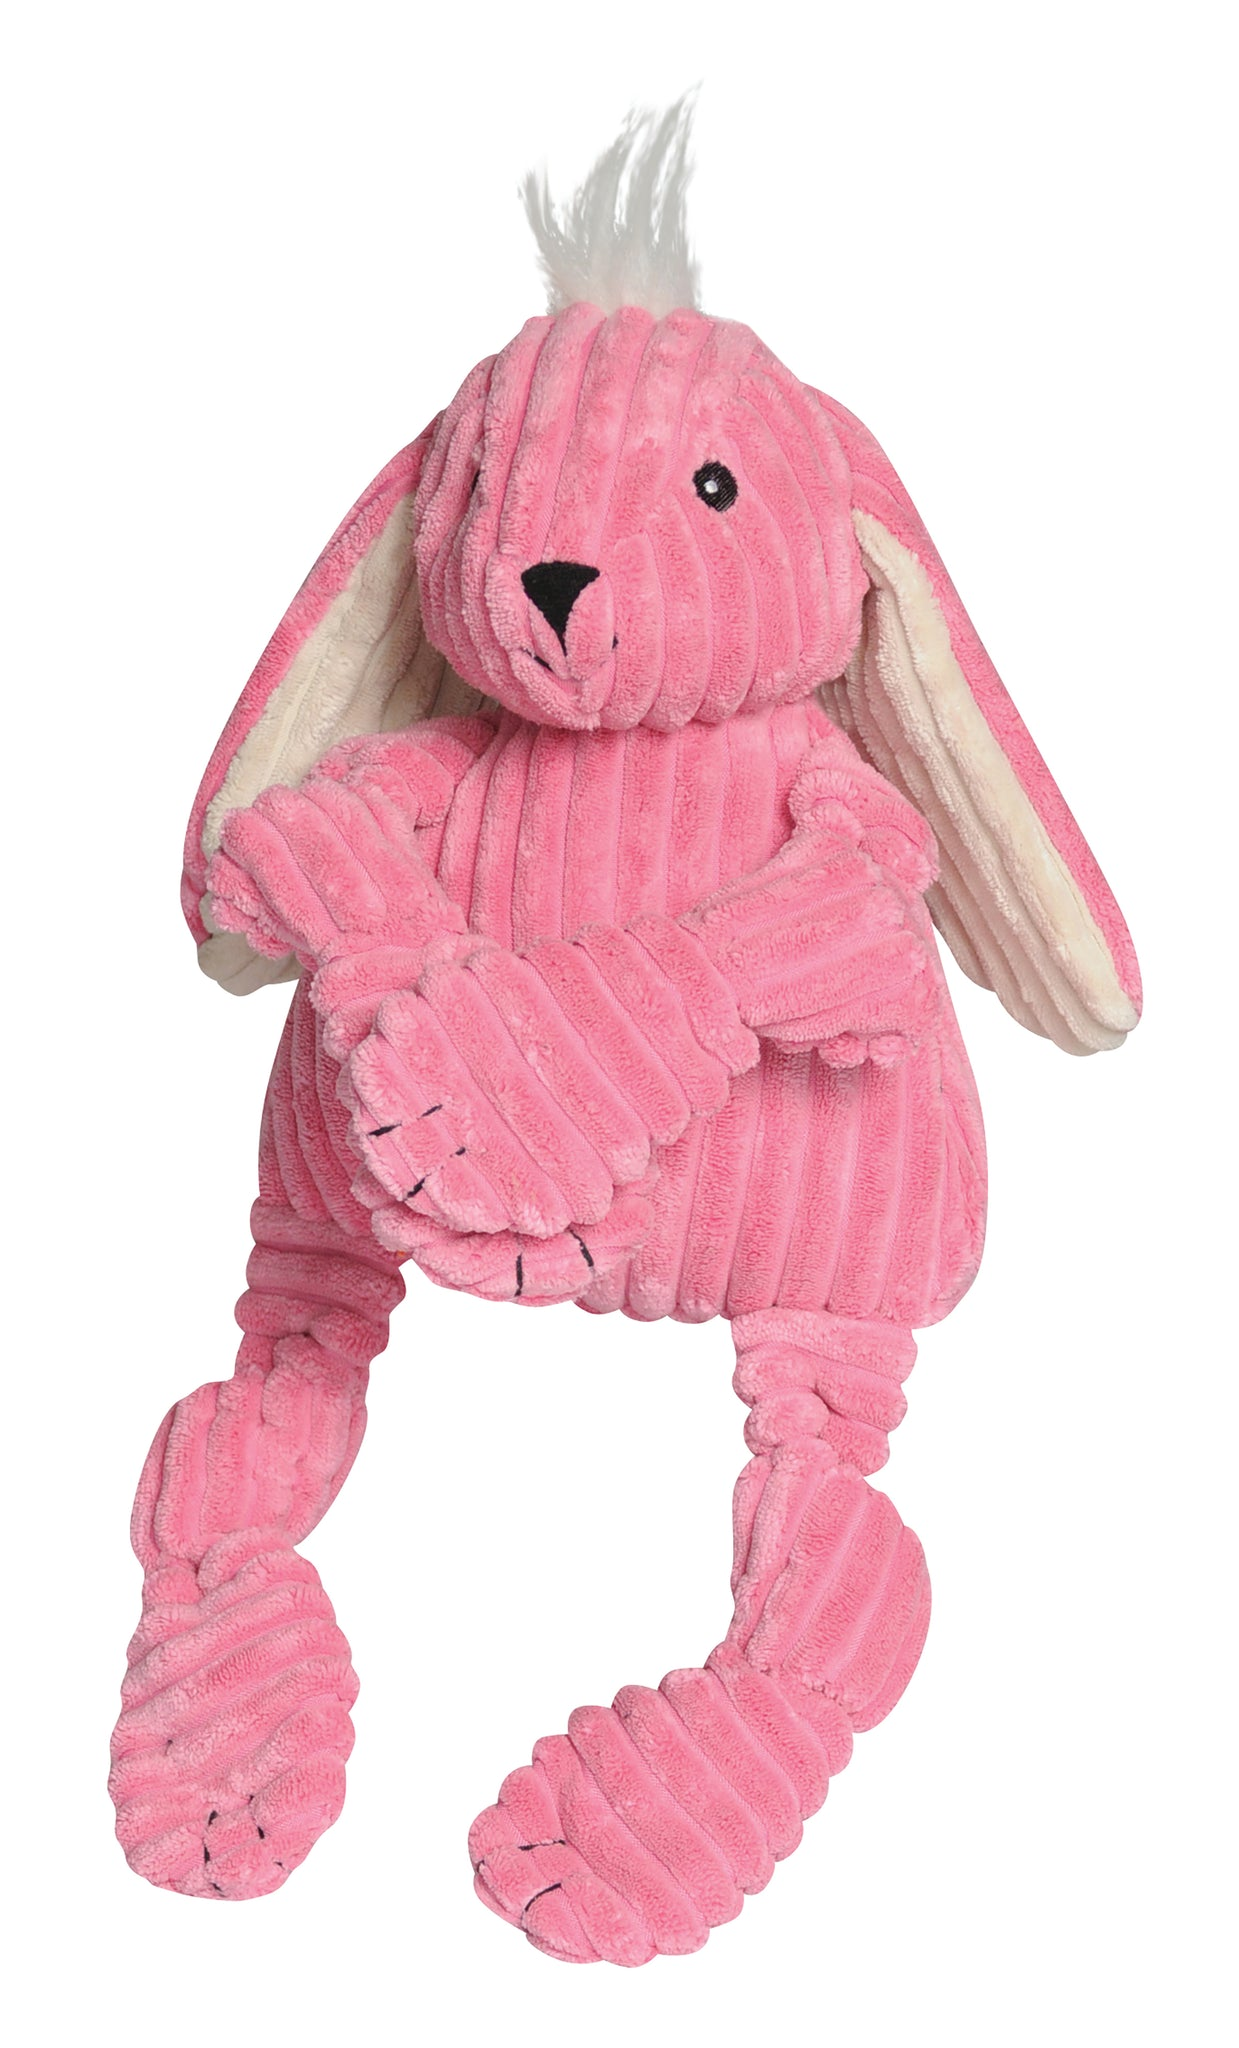 Knotties Pink Bunny Toy - Dog Toy - 3 Sizes